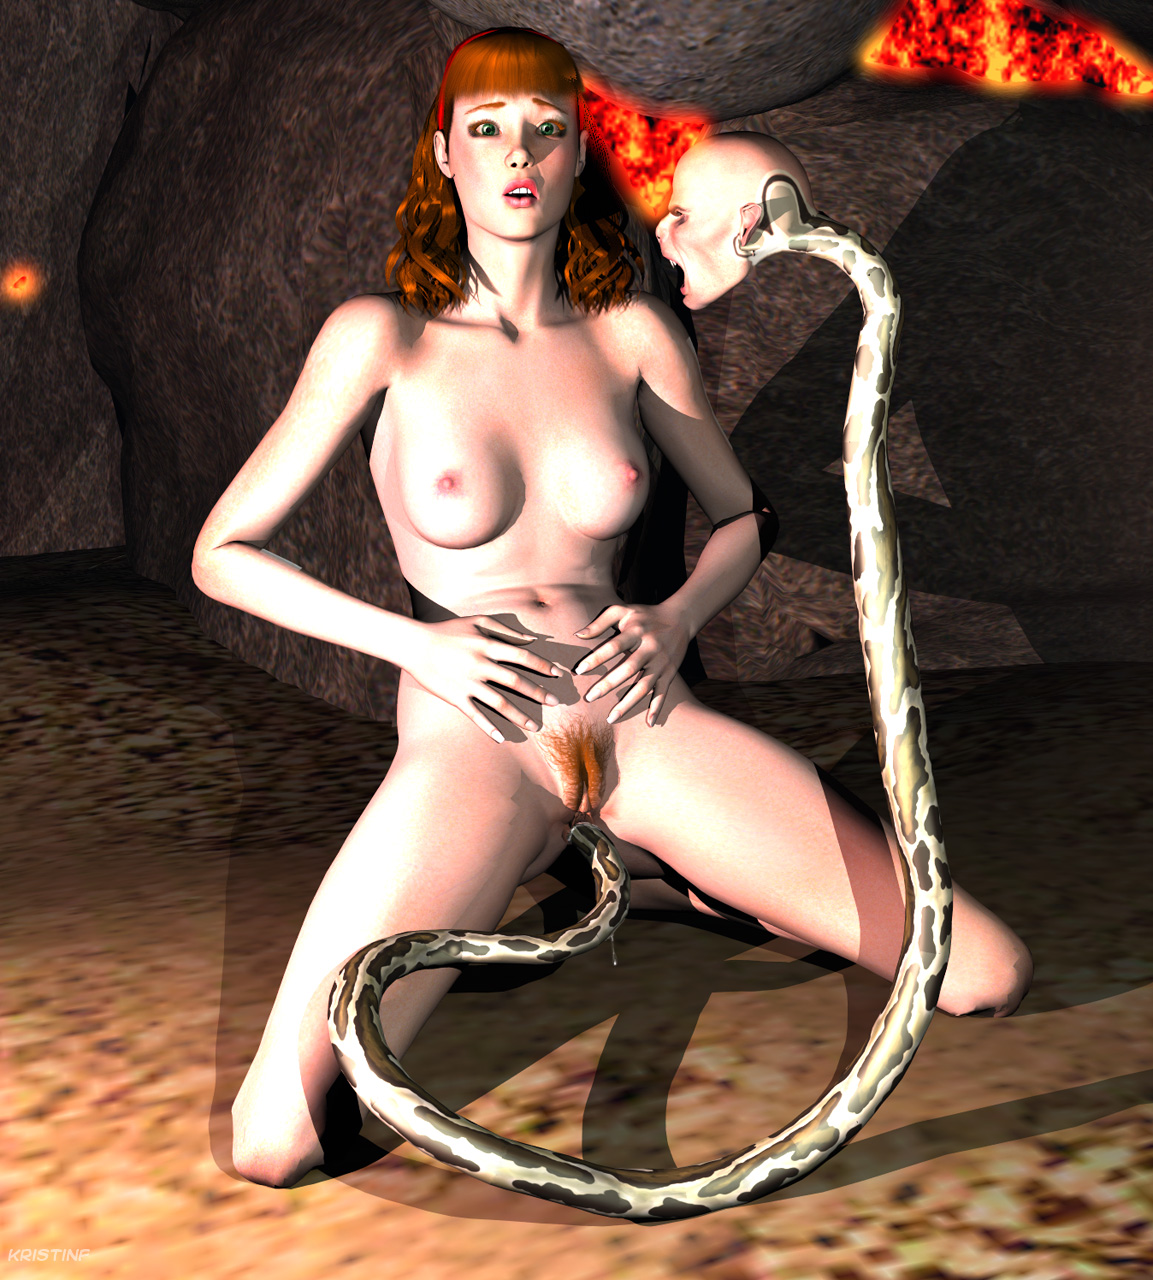 Real lady sex demons nude xxx pic